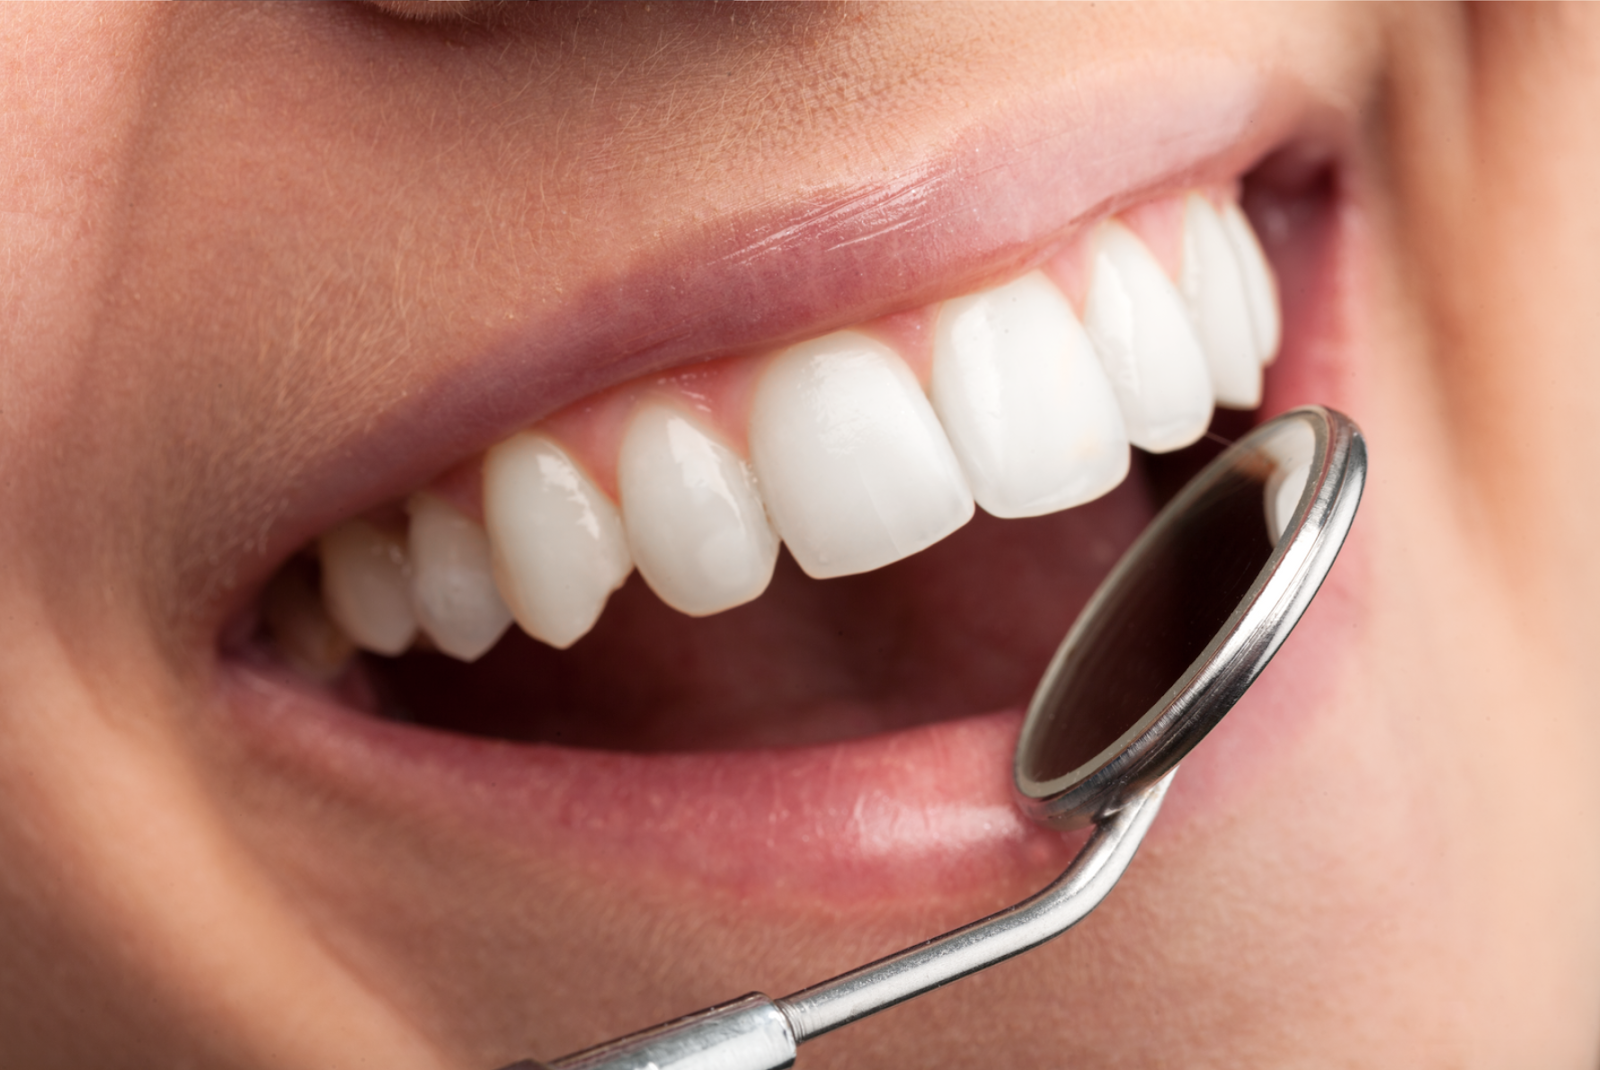 dental tool near a smiling mouth